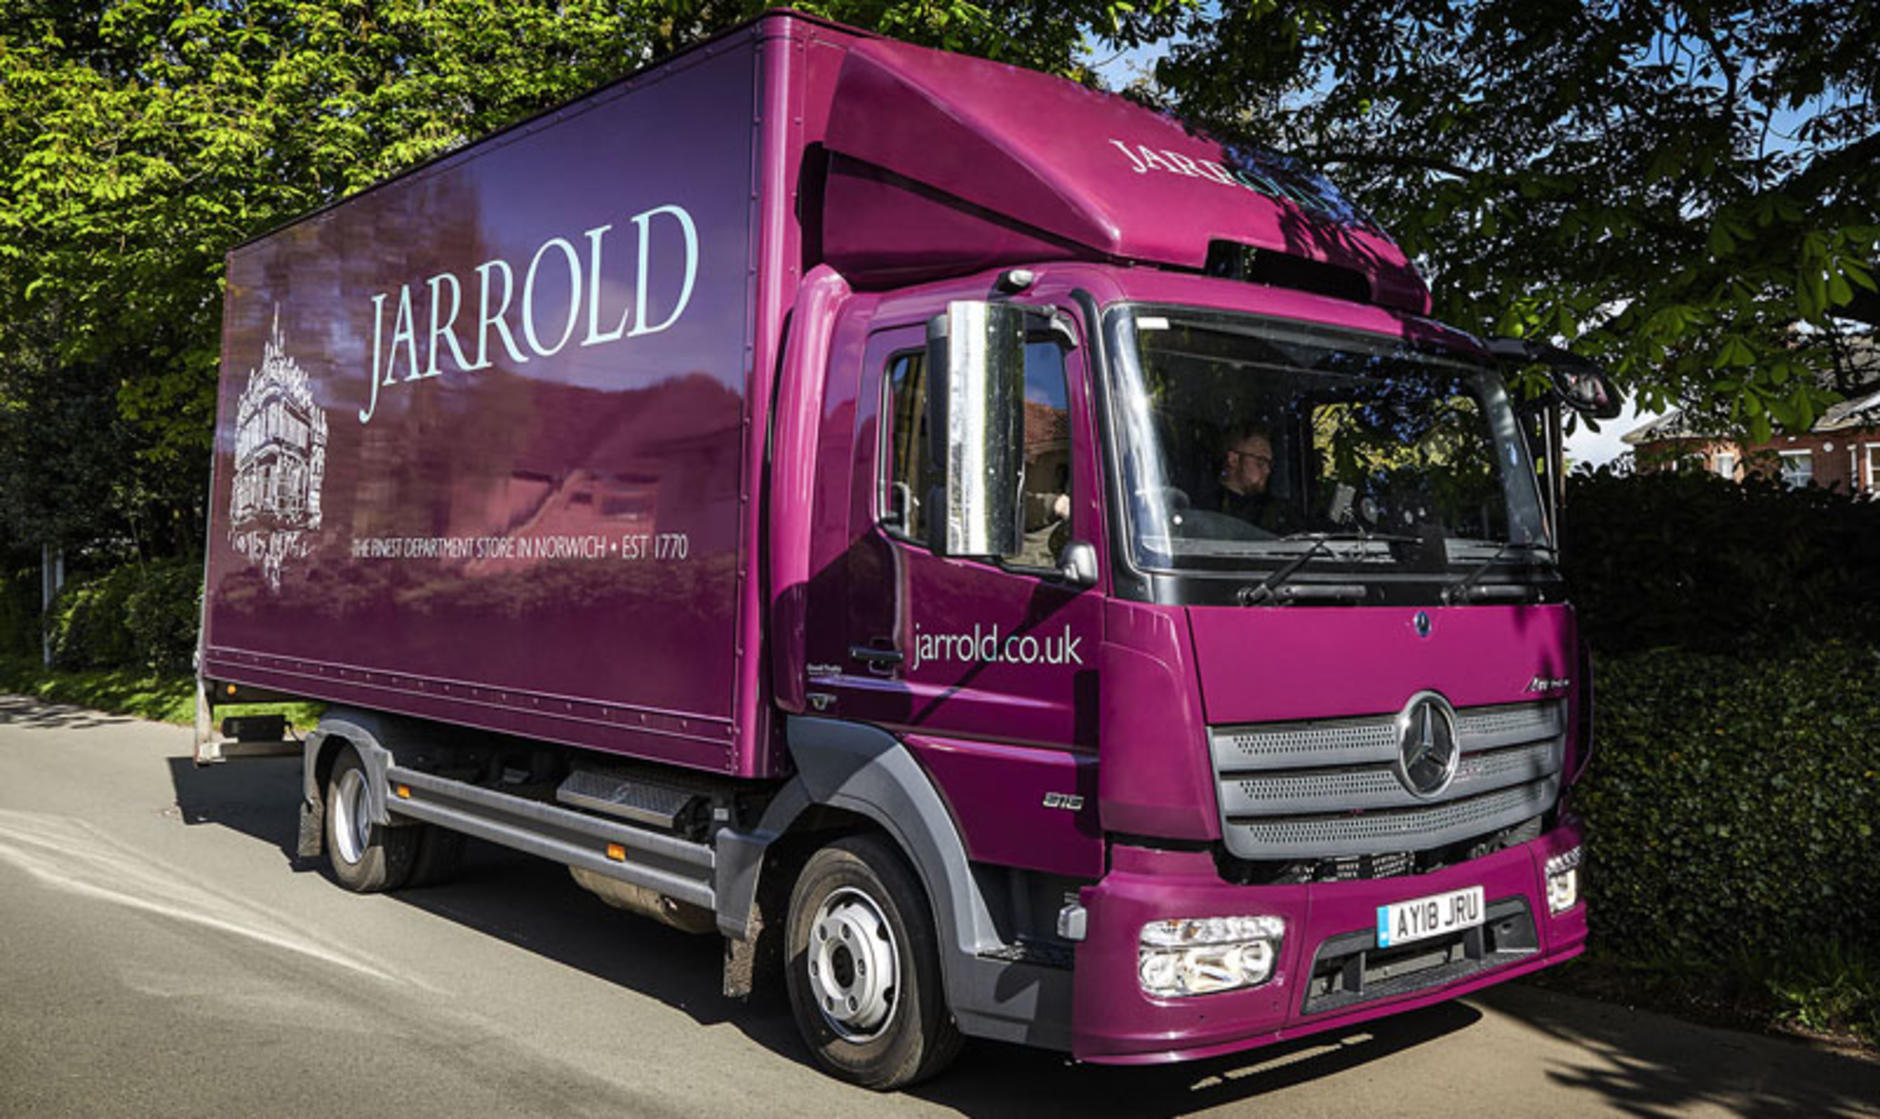 a5579cd695 Orwell Truck   Van supplies department store Jarrold with two ...